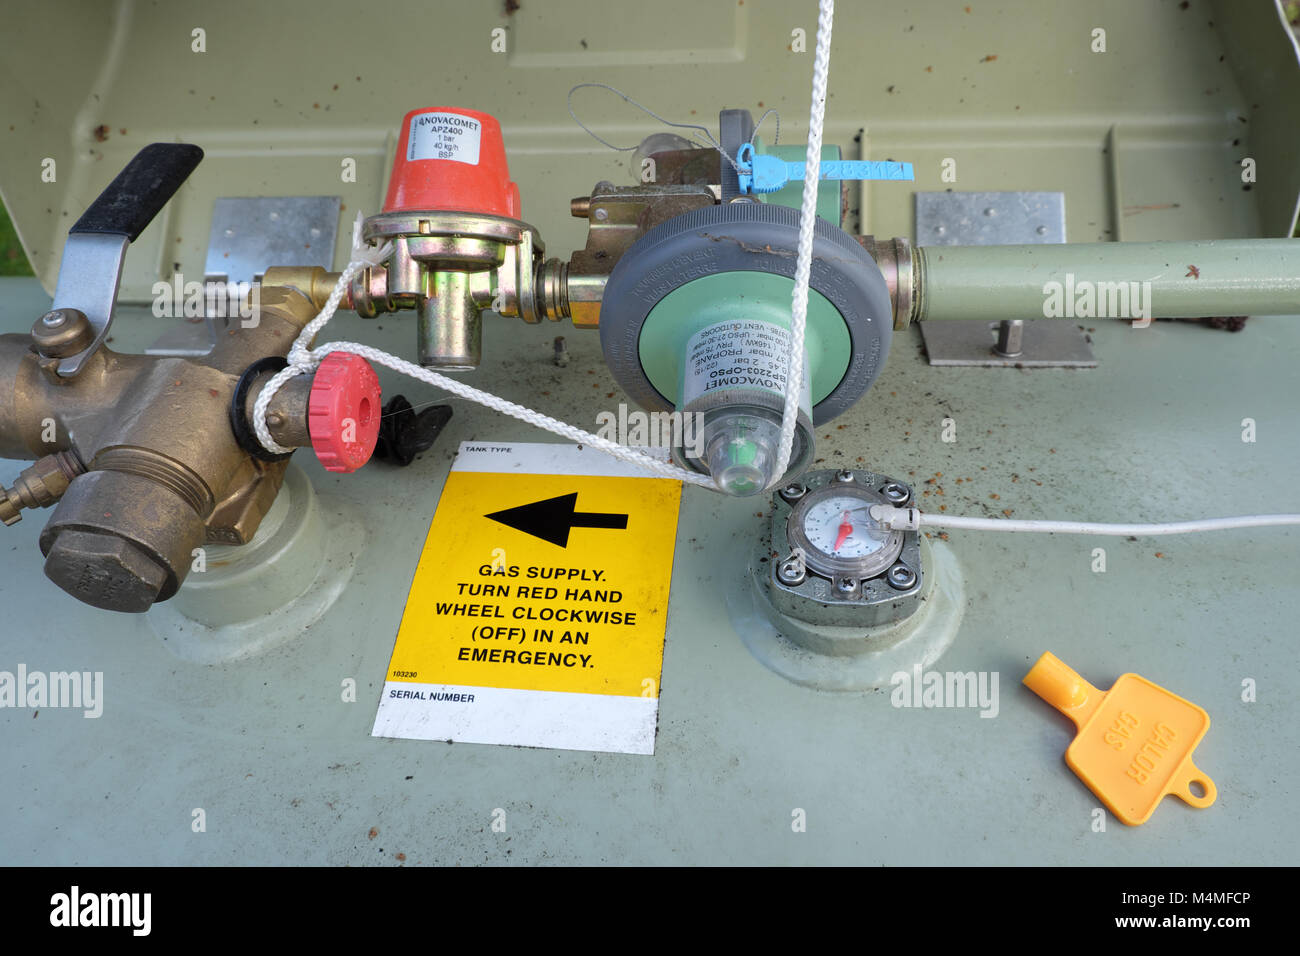 Calor LPG gas tank meter and valves - Stock Image